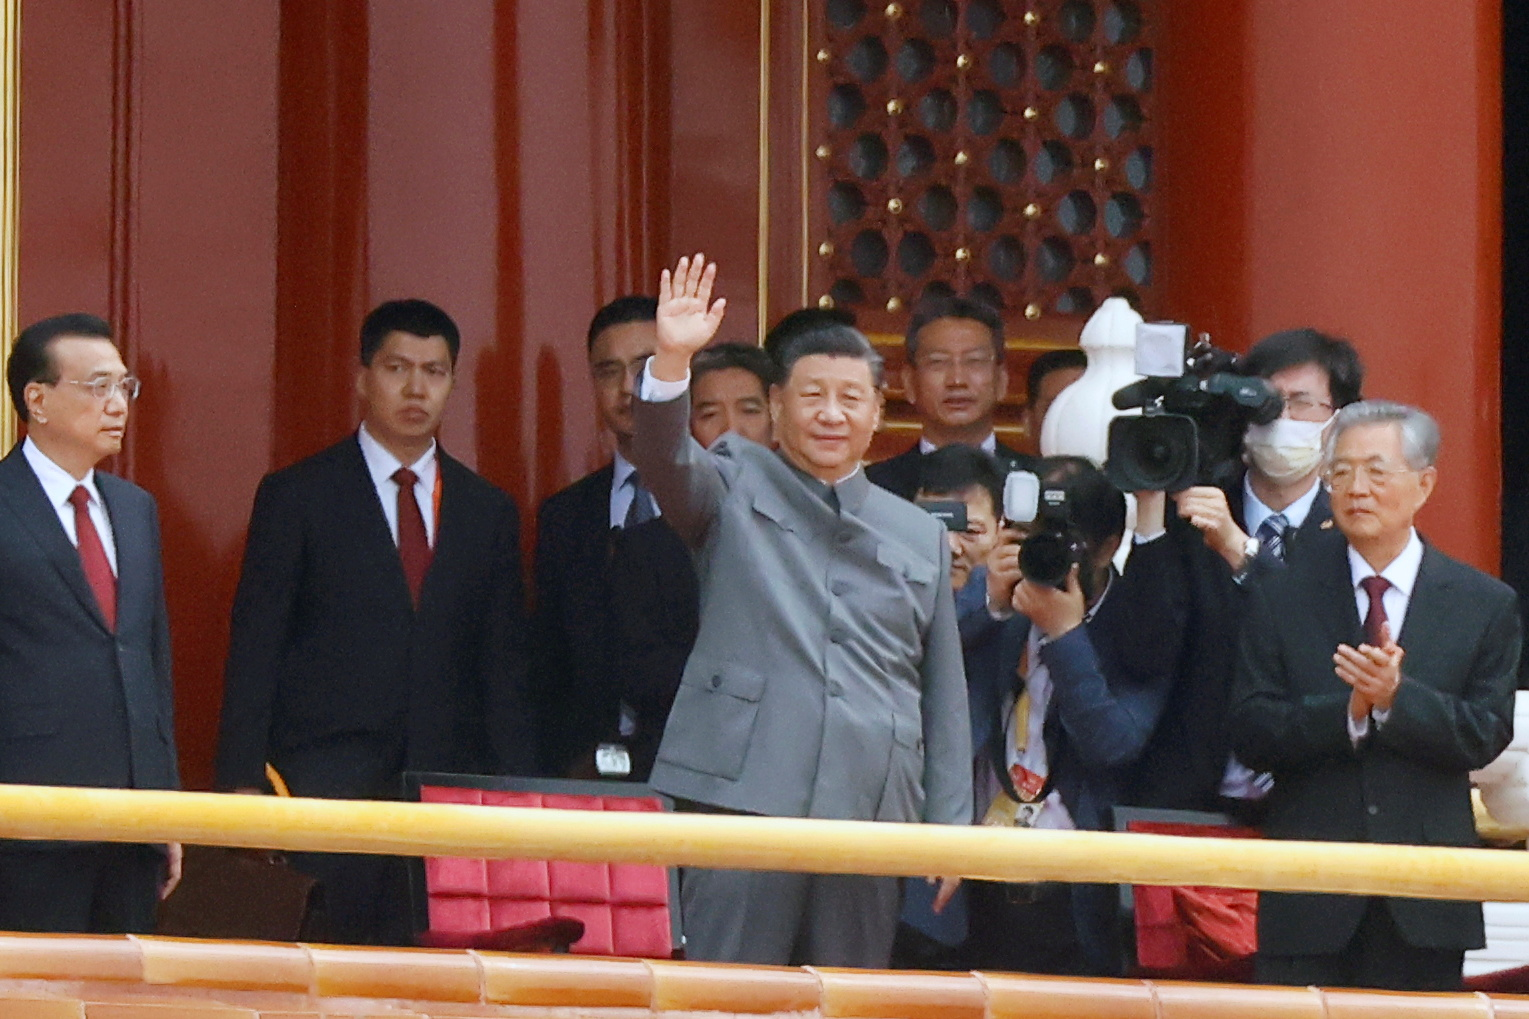 Chinese President Xi Jinping waves next to Premier Li Keqiang and former president Hu Jintao at the end of the event marking the 100th founding anniversary of the Communist Party of China, on Tiananmen Square in Beijing, China July 1, 2021. REUTERS/Carlos Garcia Rawlins